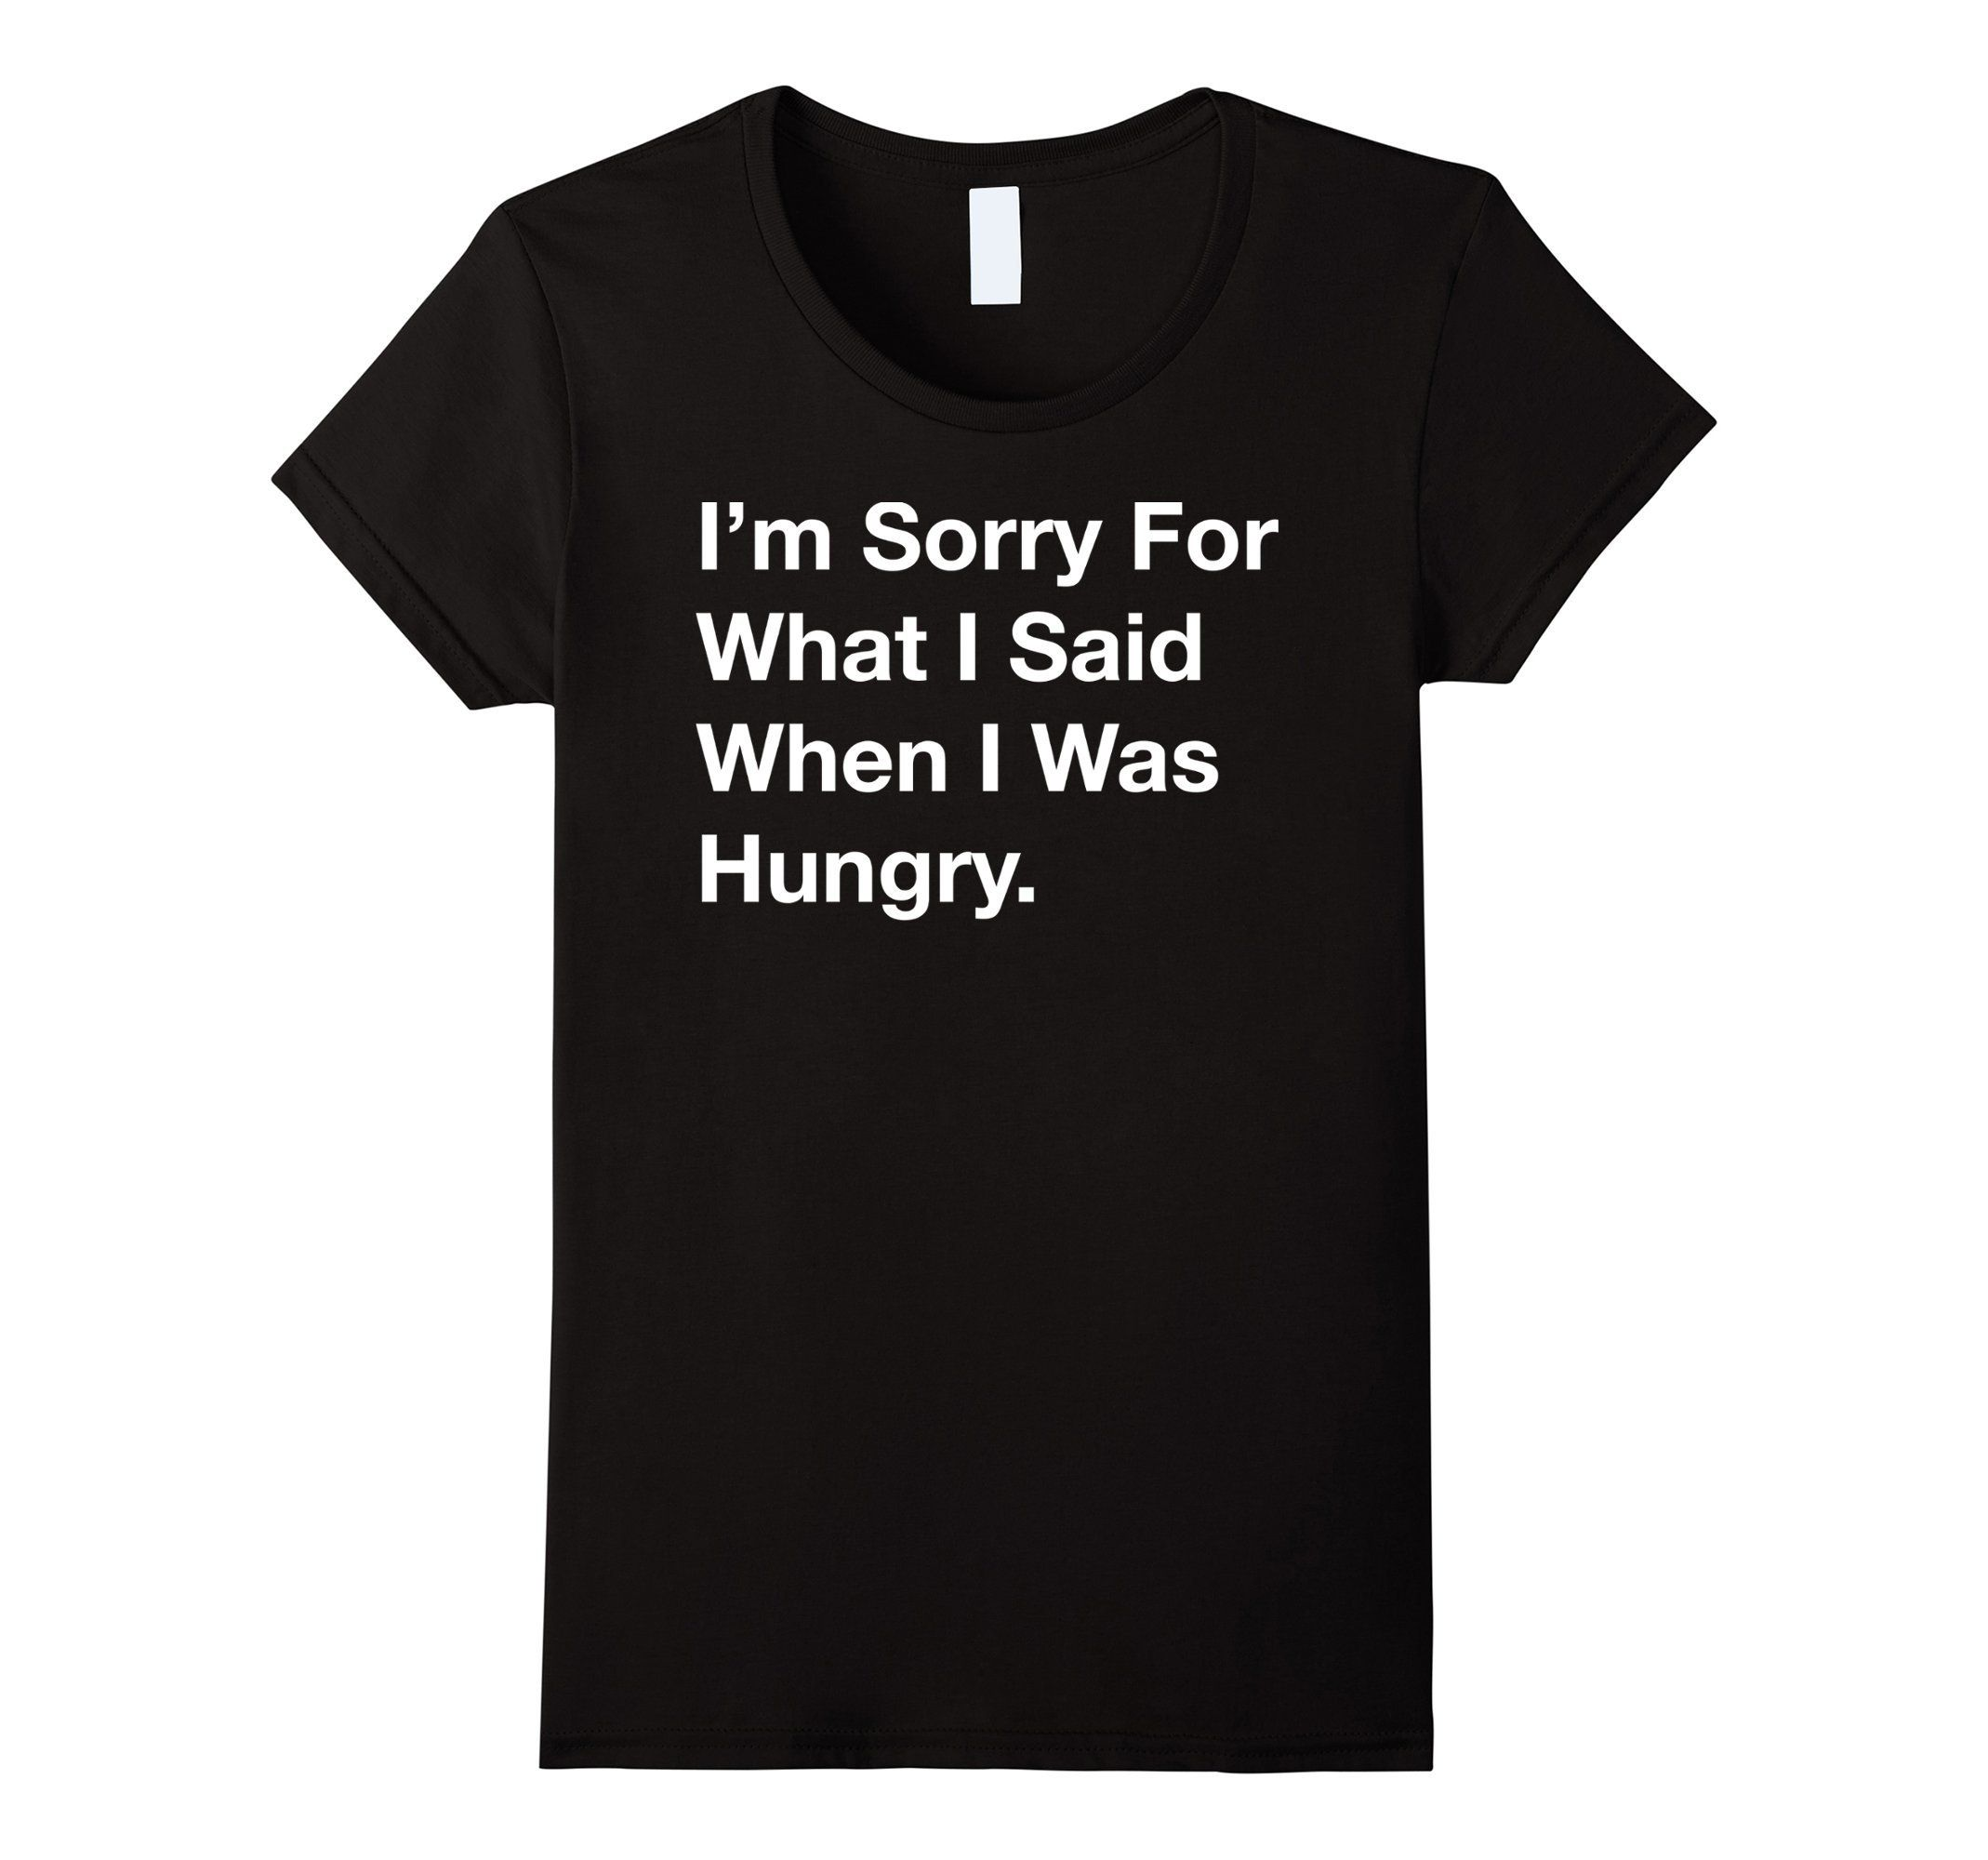 Amazon.com: Funny T-shirt - I'm Sorry For What I Said When I Was Hungry: Clothing